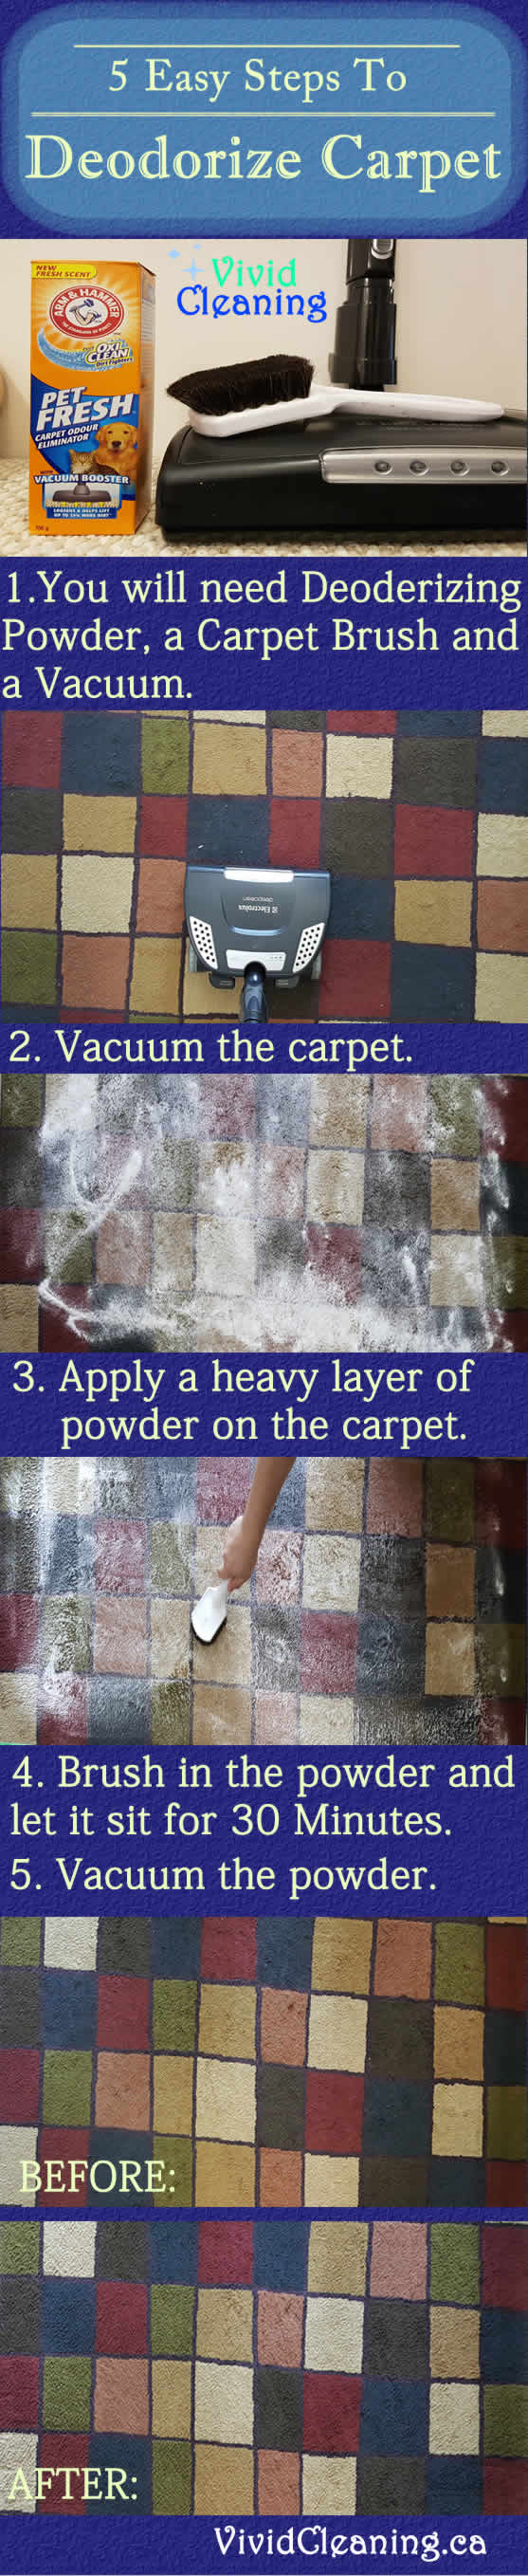 5 Easy Steps To Deodorize Carpet 1.You will need Deodorizing Powder, a Carpet Brush and a Vacuum. 2. Vacuum the carpet. 3. Apply a heavy layer of powder on the carpet. 4. Brush in the powder andlet it sit for 30 Minutes. 5. Vacuum the powder.